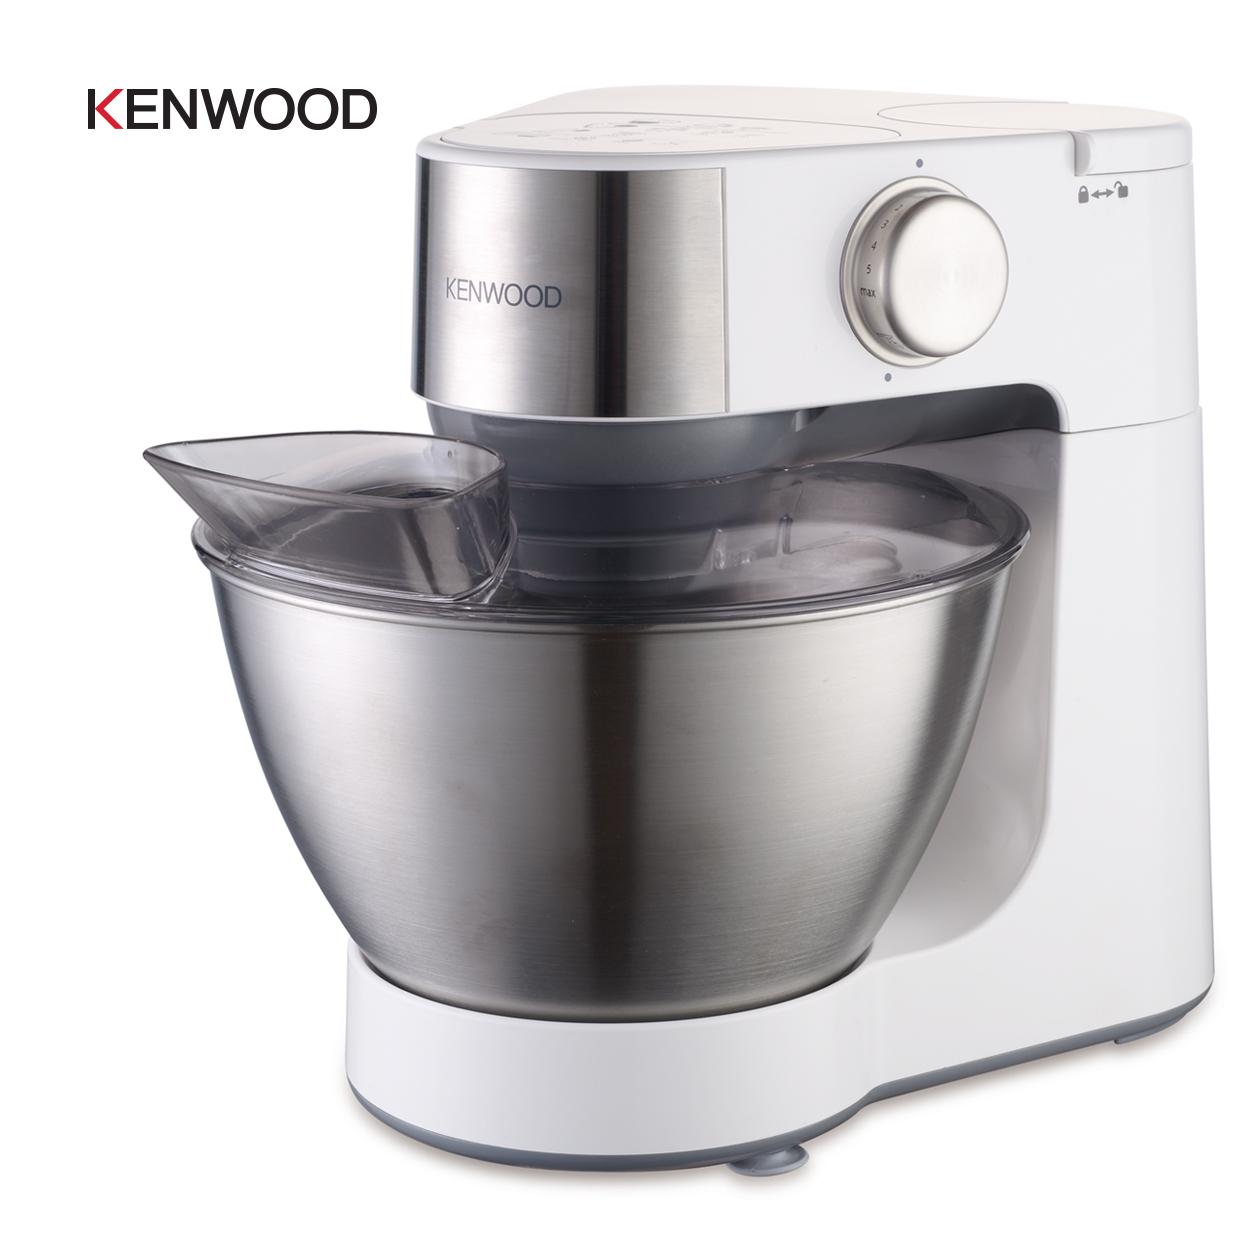 Remarkable Kitchenaid Stand Mixer Ksm150 Yellow Pepper Singapore Home Interior And Landscaping Analalmasignezvosmurscom